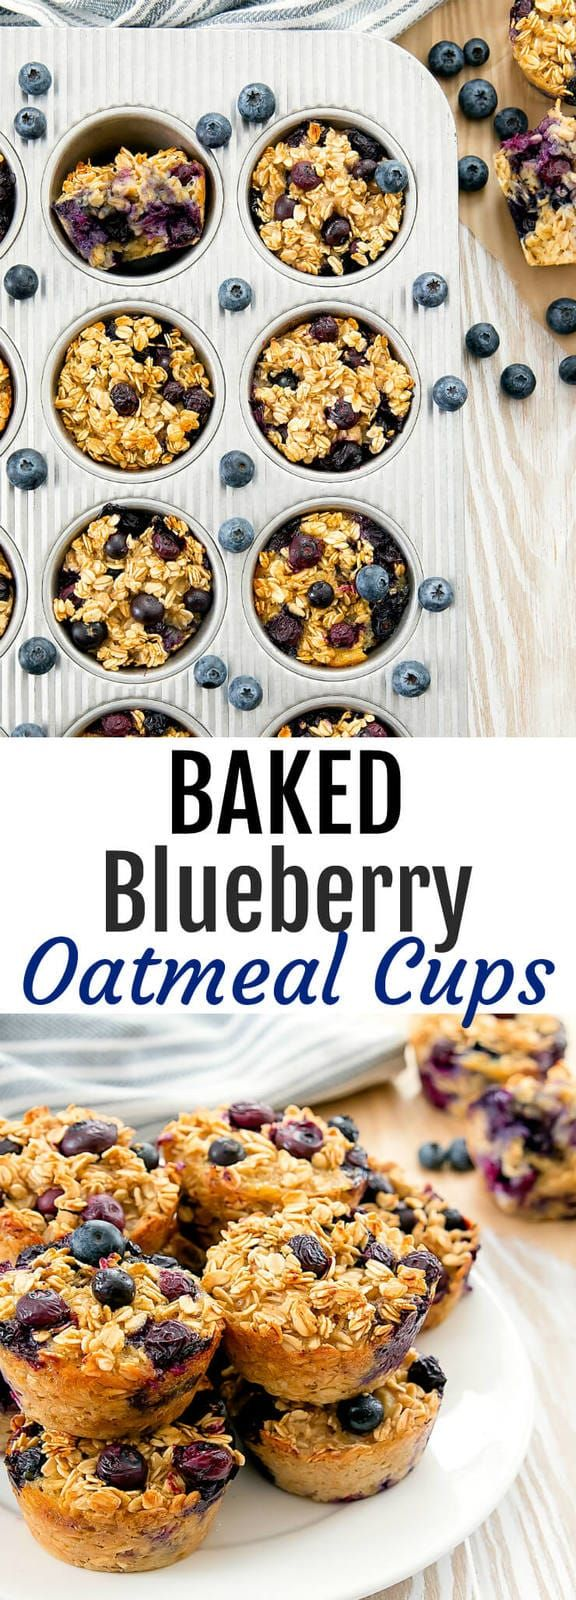 Baked Blueberry Oatmeal Cups images